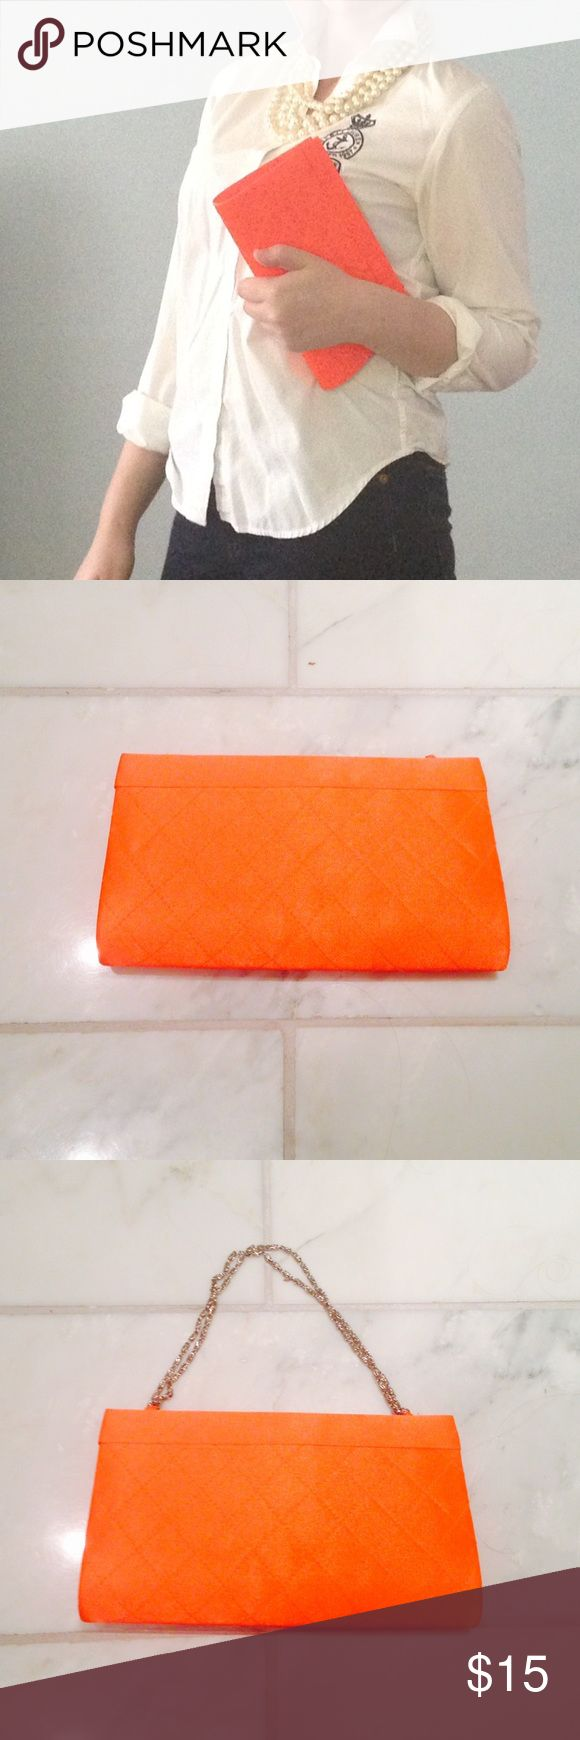 New without tag Orange Clutch New without tag, beautiful bright orange clutch. This comes with a chain that can be used or hidden away in purse. Perfect pop of color to any outfit. Looks just like a Chanel! (First picture is simply inspiration- not actual bag) Bags Clutches & Wristlets